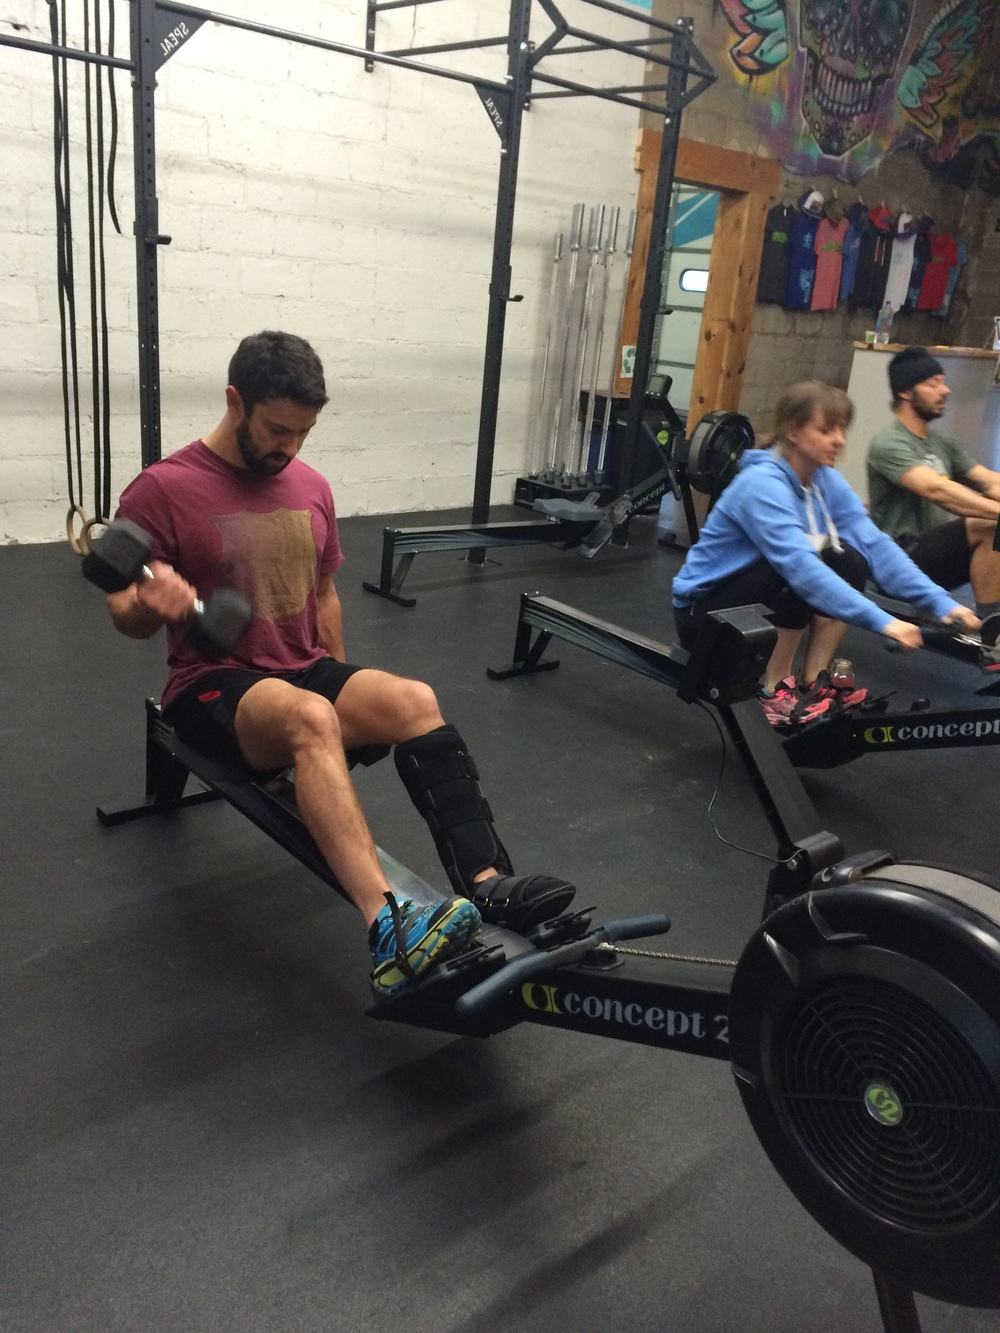 Beto is back in the gym one month after surgery to repair his shattered tibia and fibula. What's your excuse?